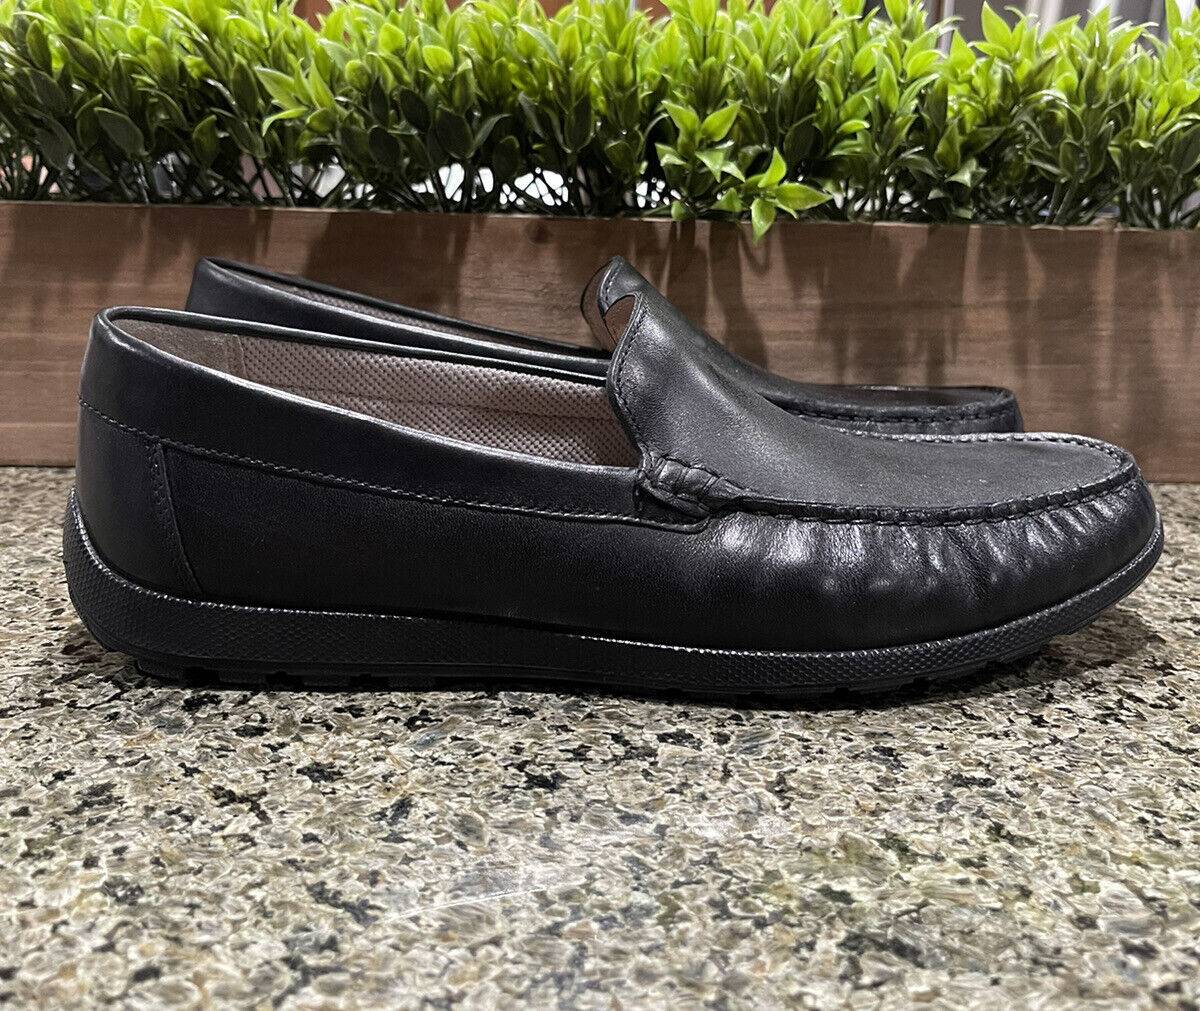 ECCO Reciprico Classic Moc Driving Style Loafers Black Leather Men's Size 8